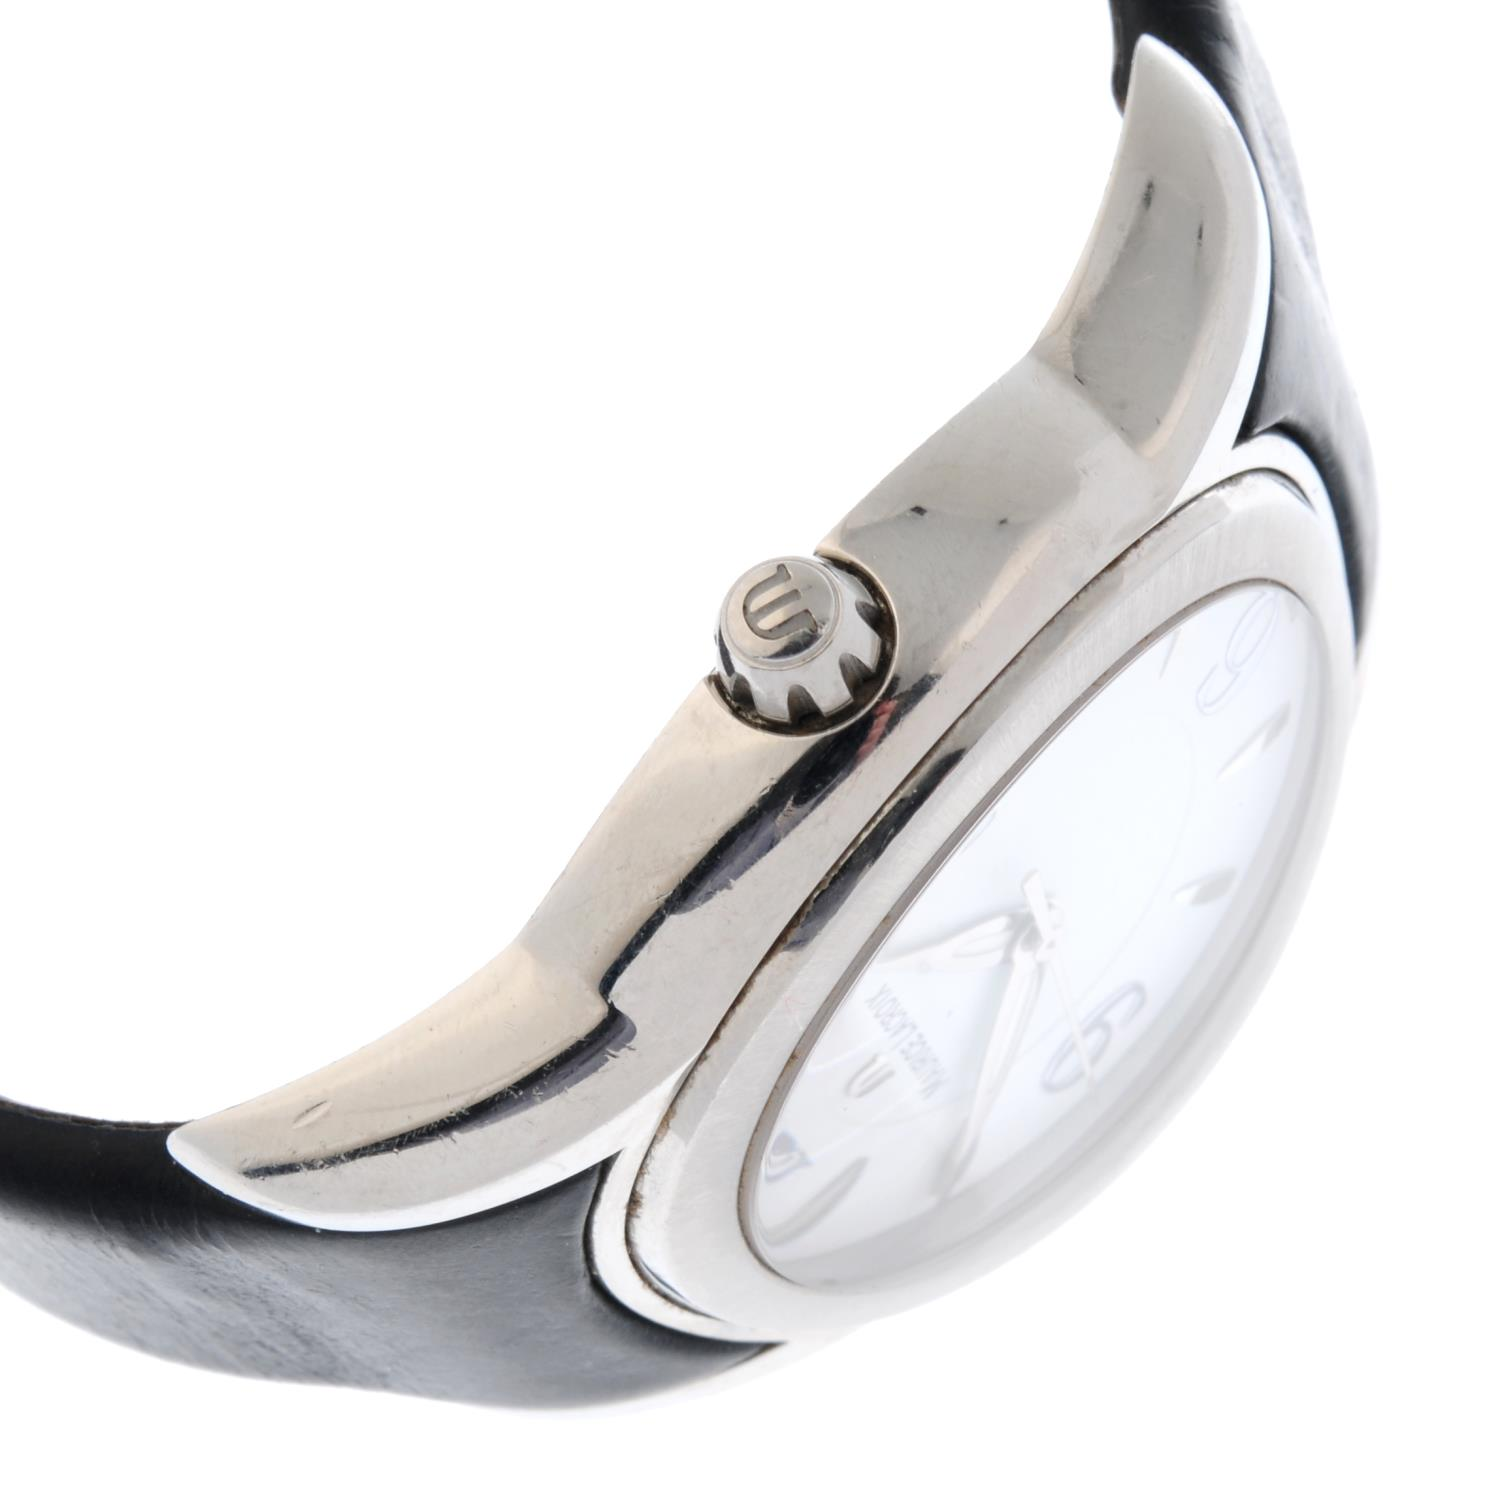 MAURICE LACROIX - a Sphere wrist watch. - Image 3 of 6